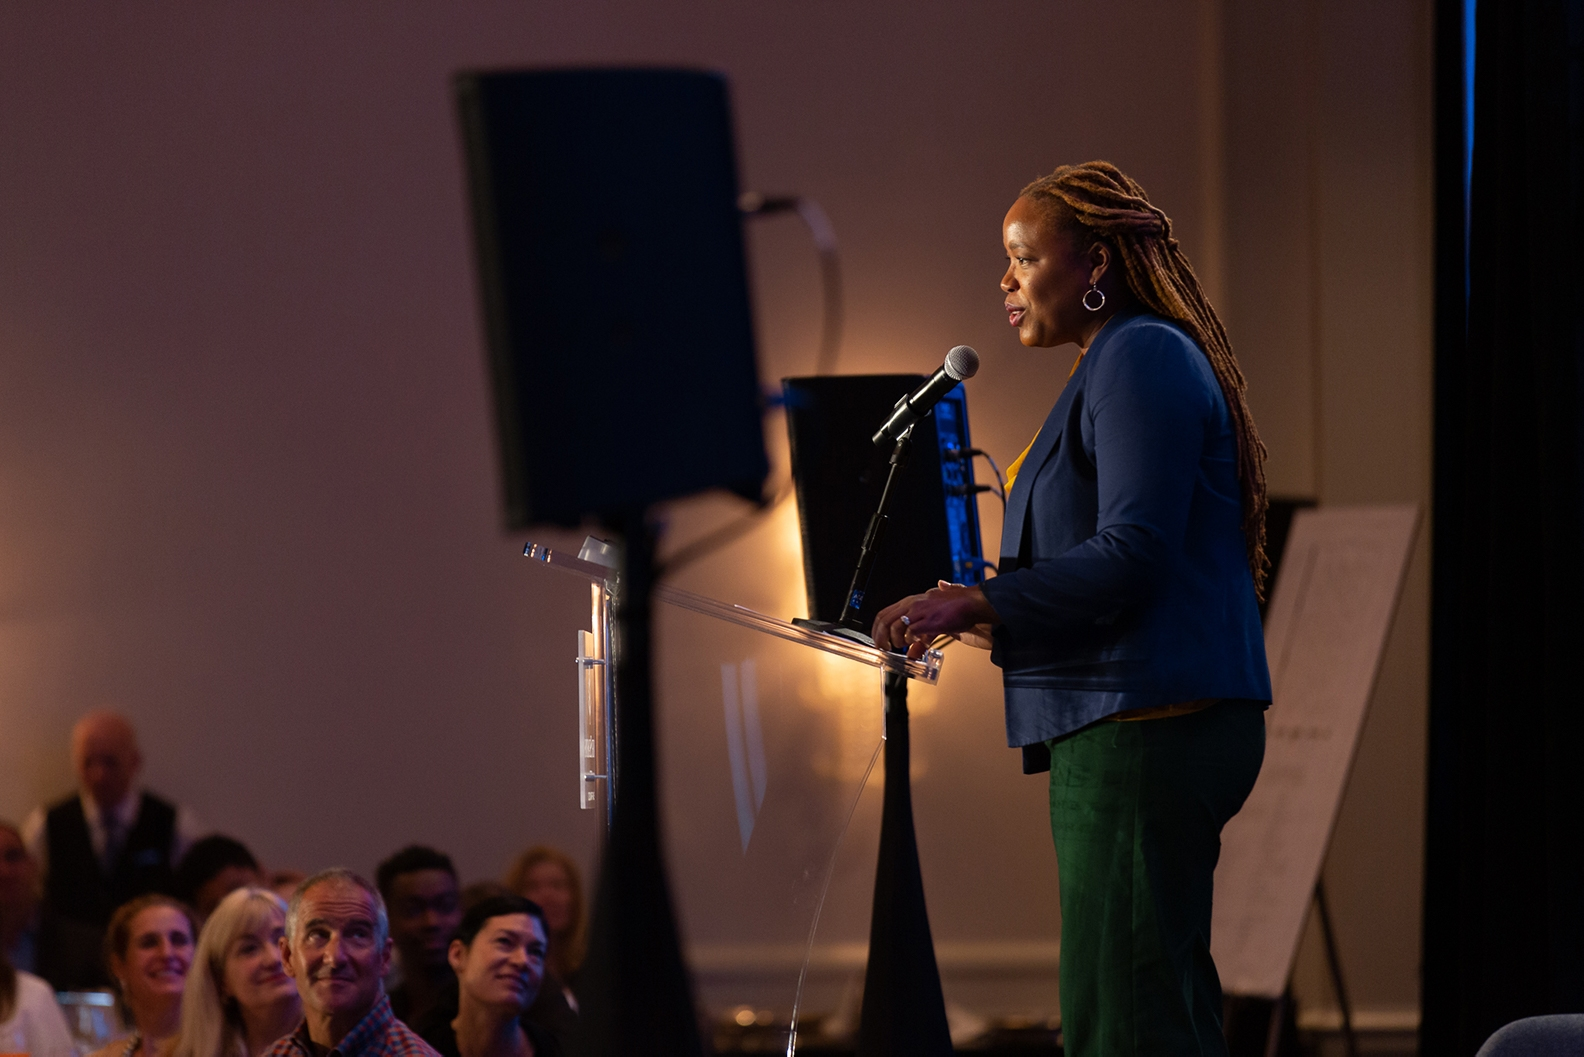 Heather McGhee delivering her keynote speech at the San Francisco event.